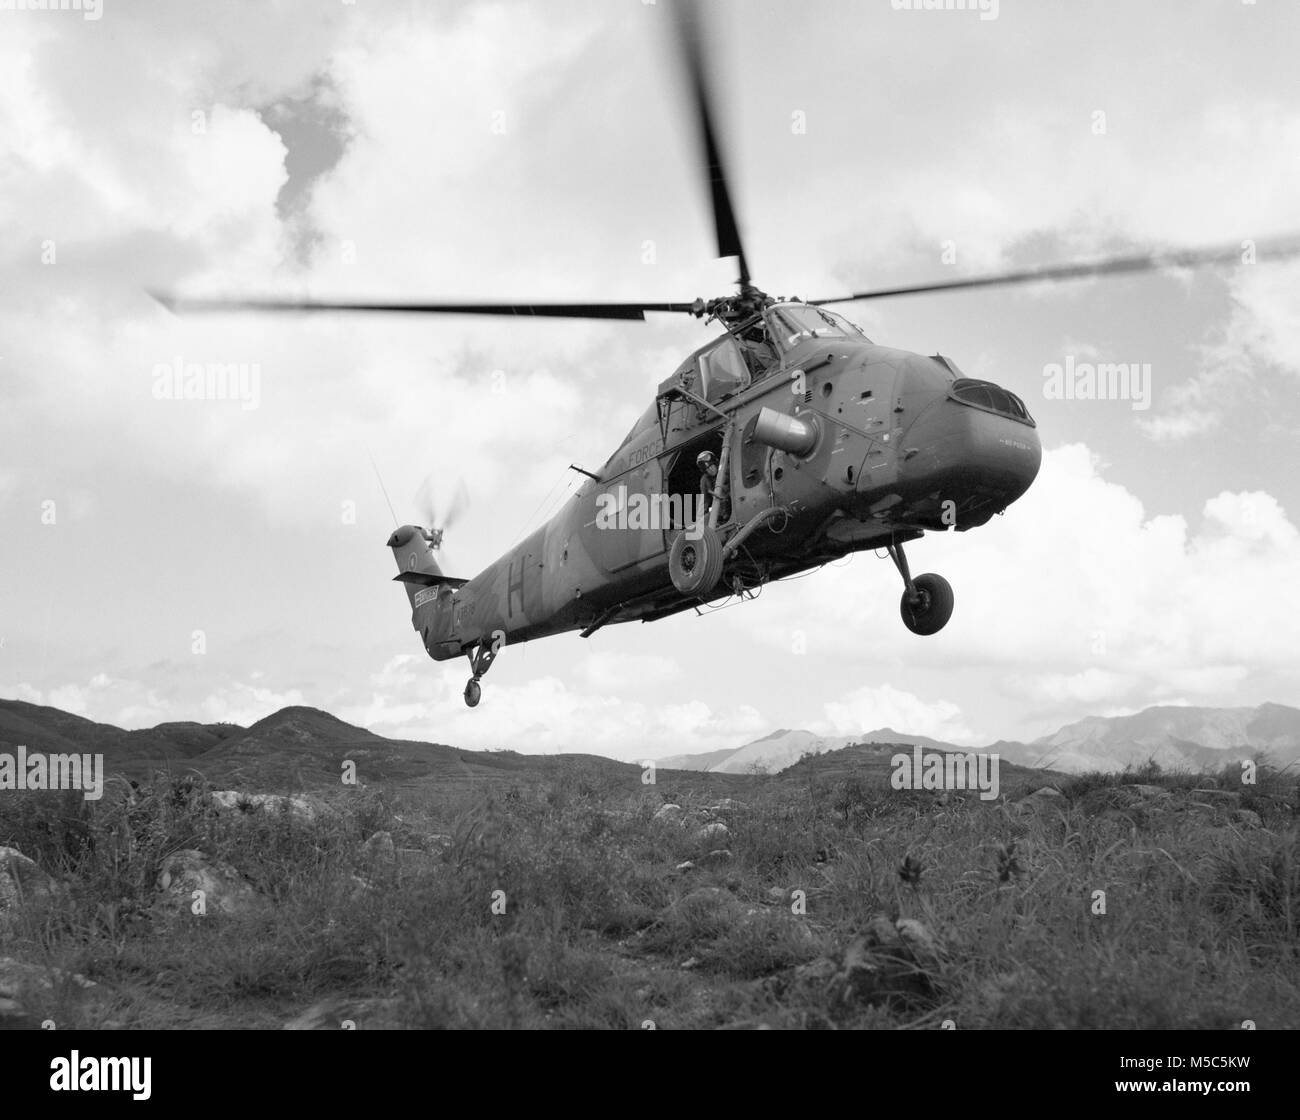 RAF Westland Wessex helicopter of 28 Sqn lifting off in mountainous terrain, Lantau, Hong Kong. - Stock Image